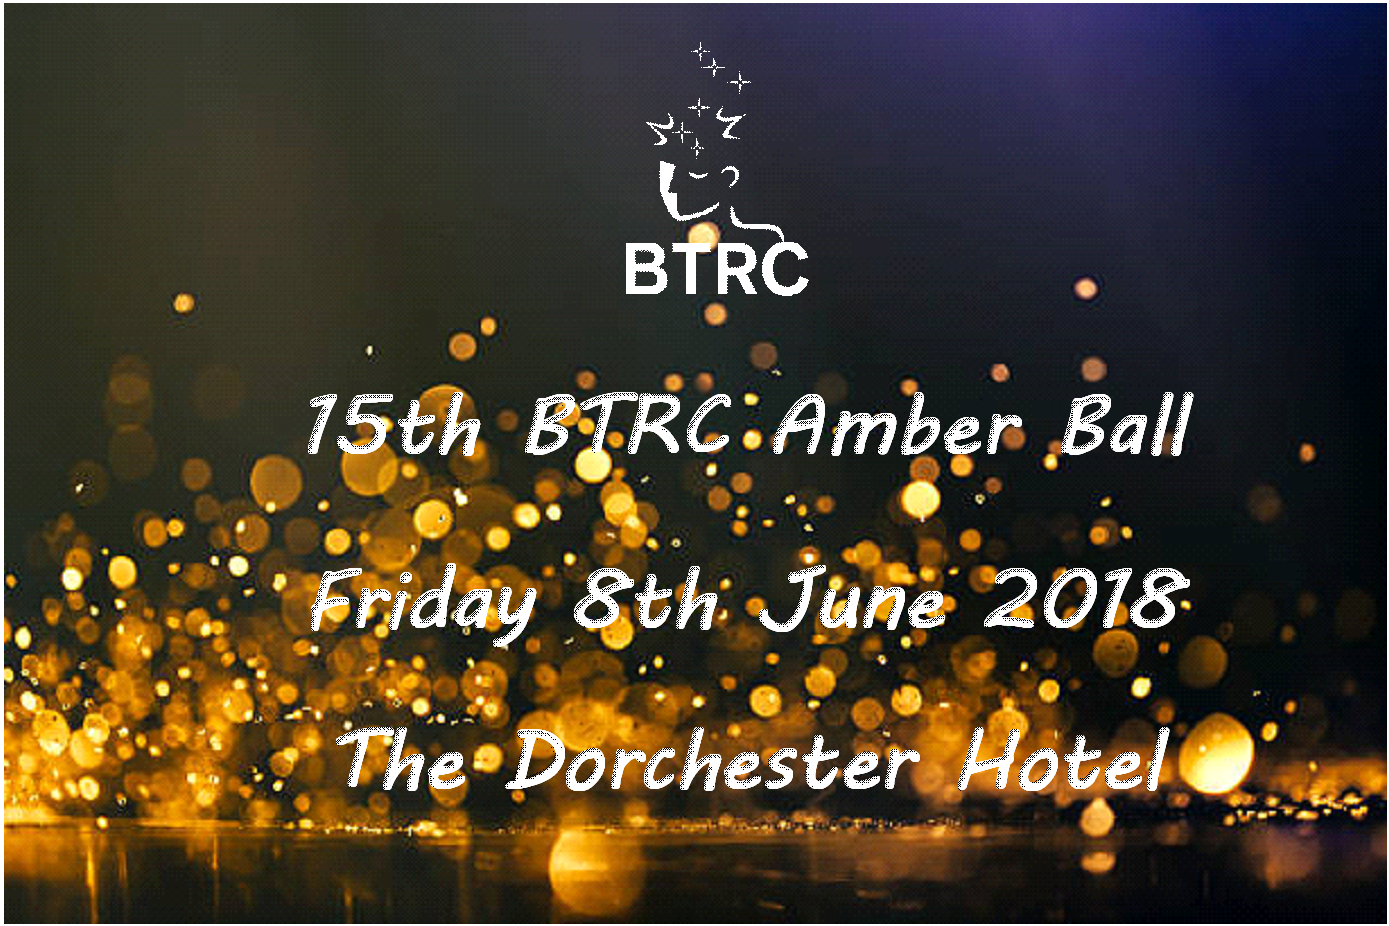 15th BTRC Amber Ball on 8th June